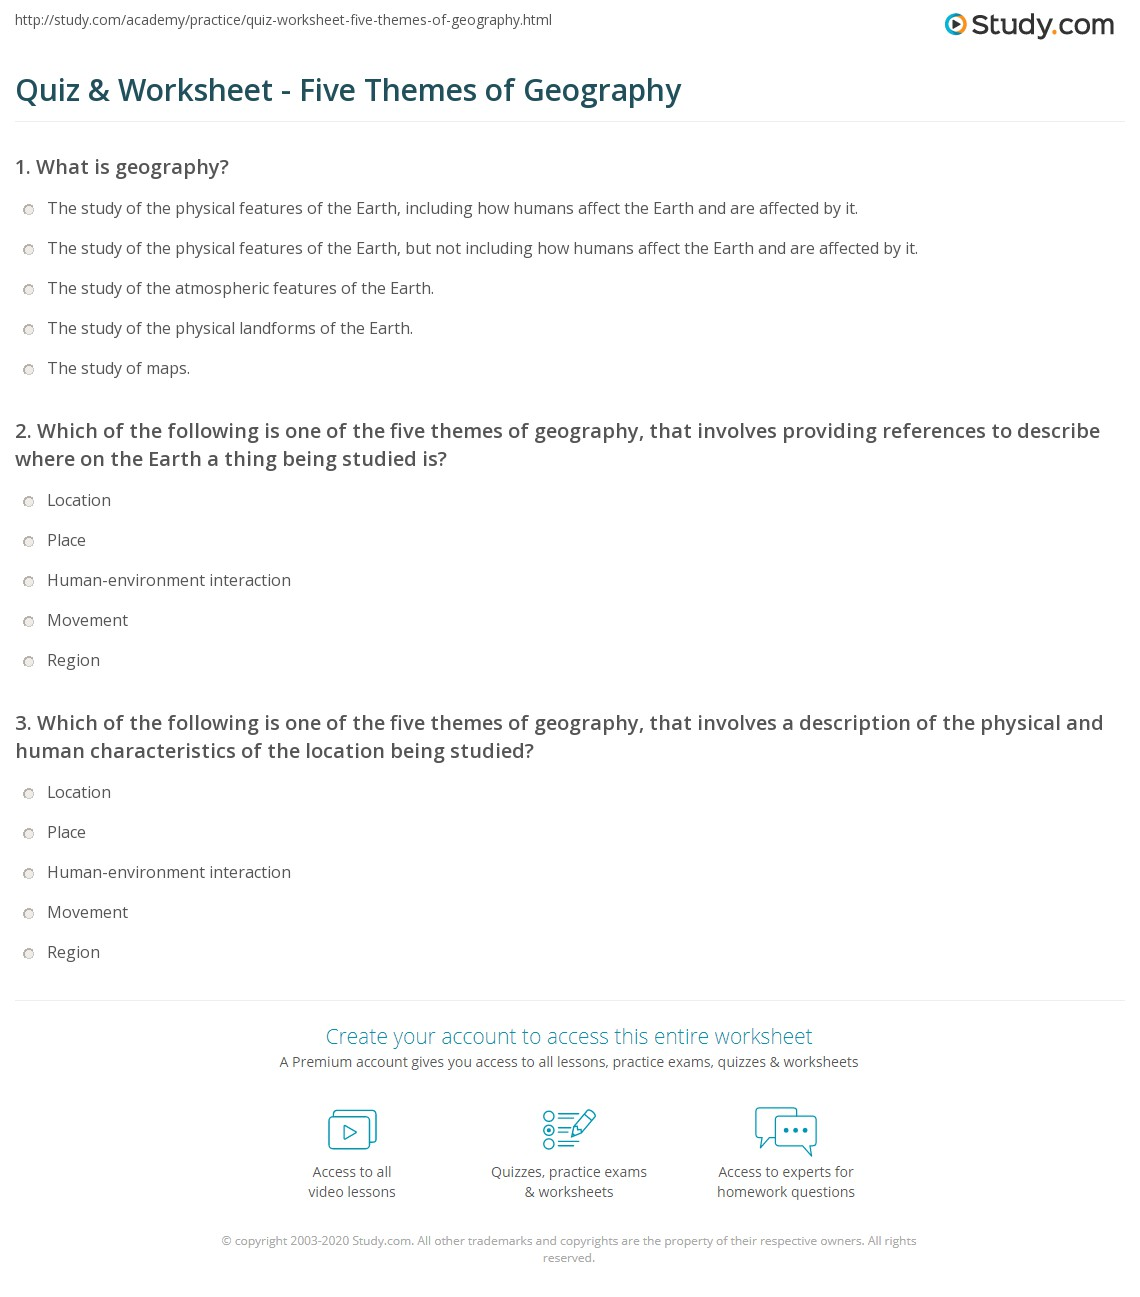 Worksheets 5 Themes Of Geography Worksheet quiz worksheet five themes of geography study com print what are the worksheet